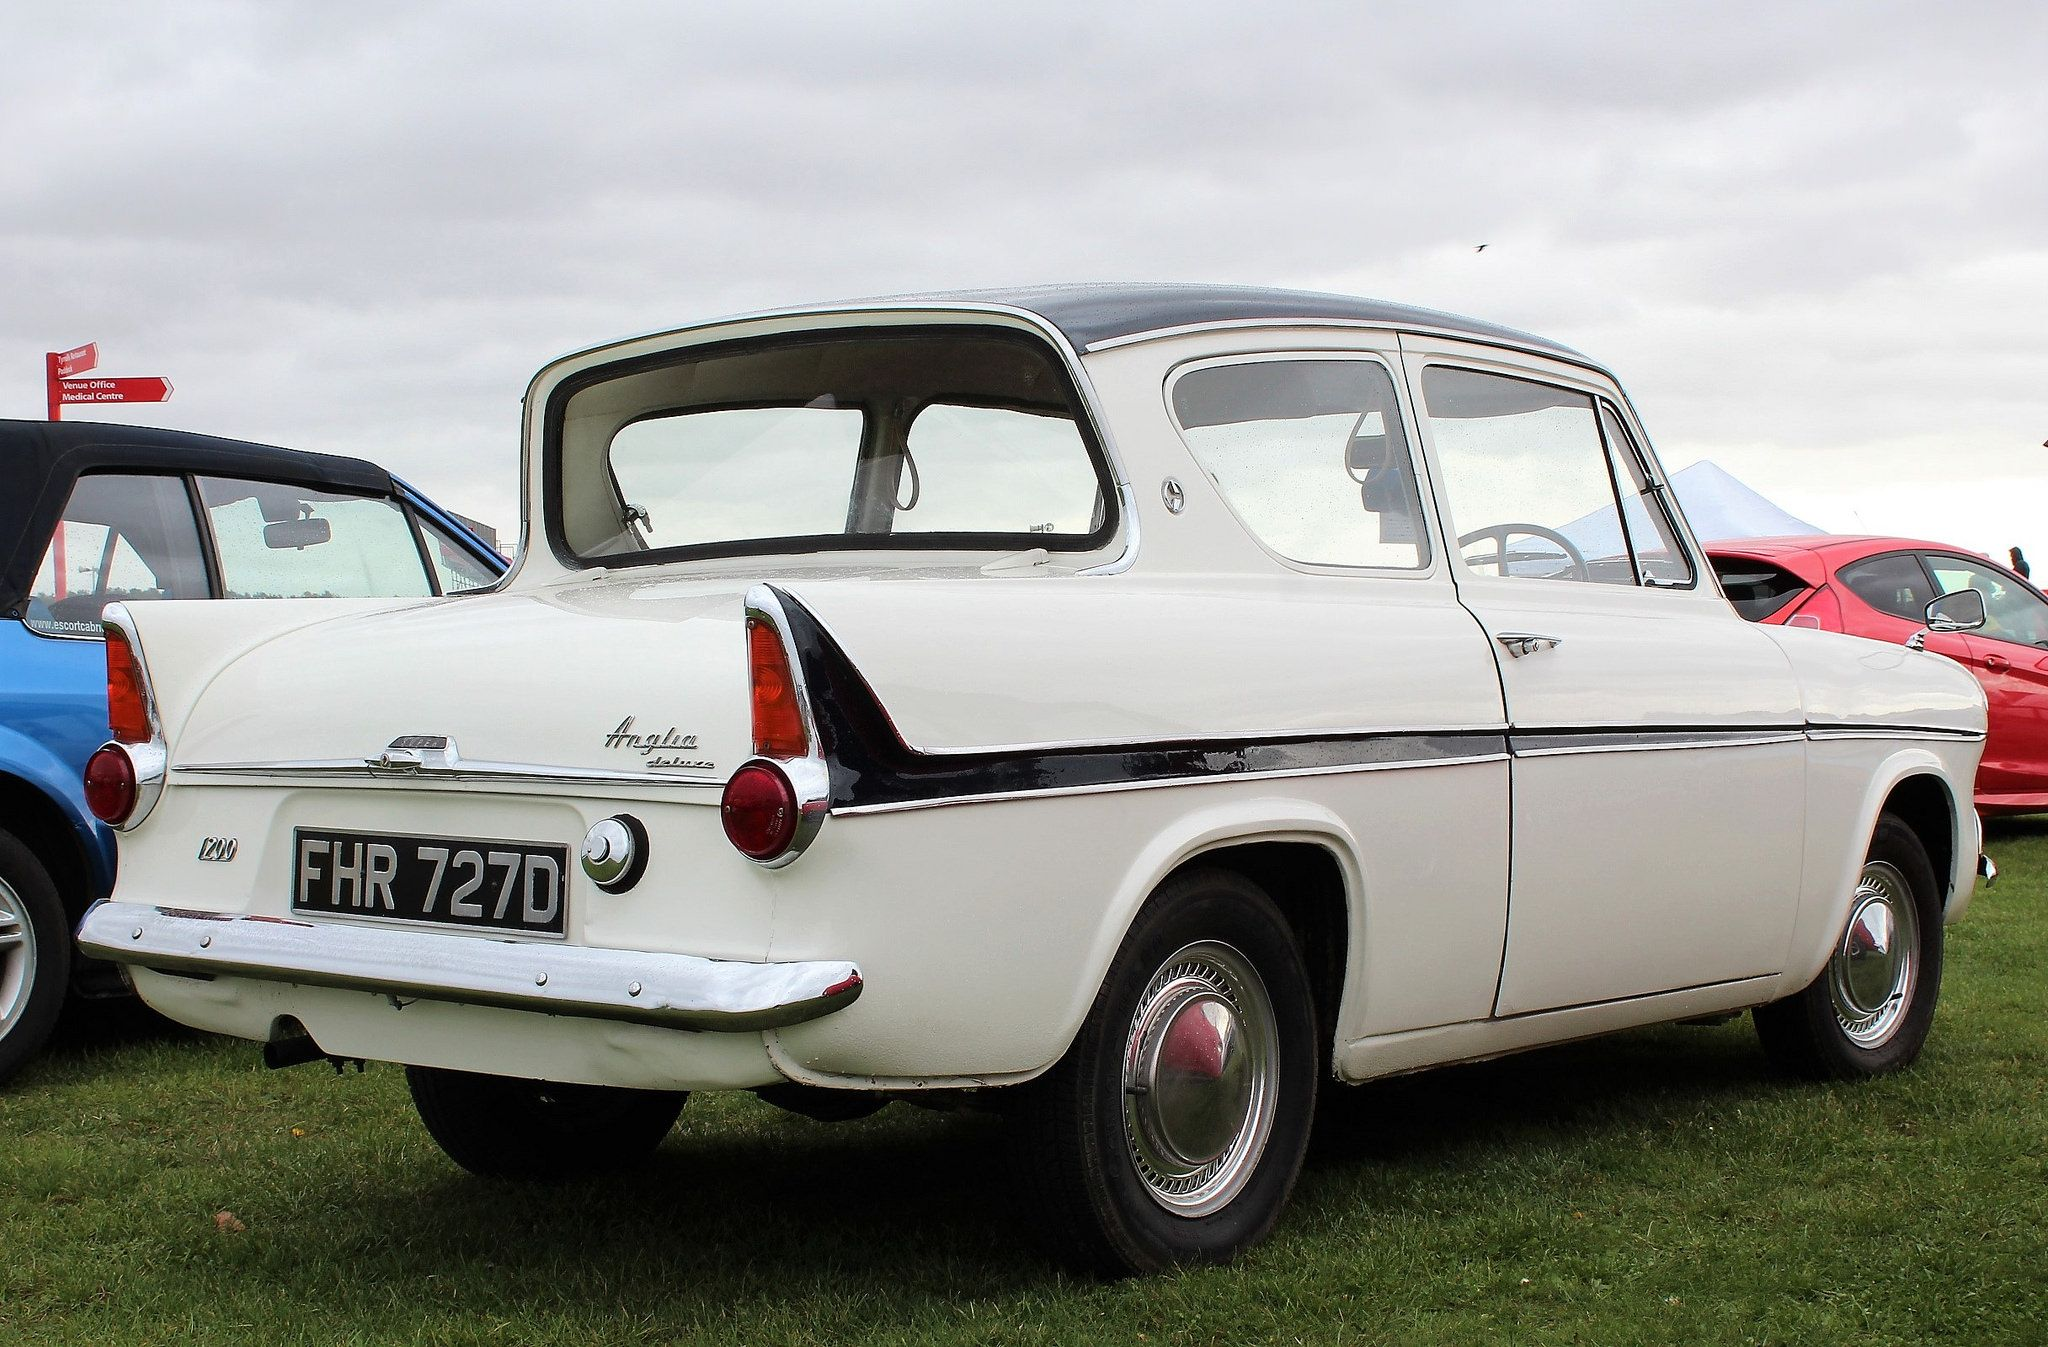 Fhr 727d 2 Ford Anglia Car Ford Ford Classic Cars